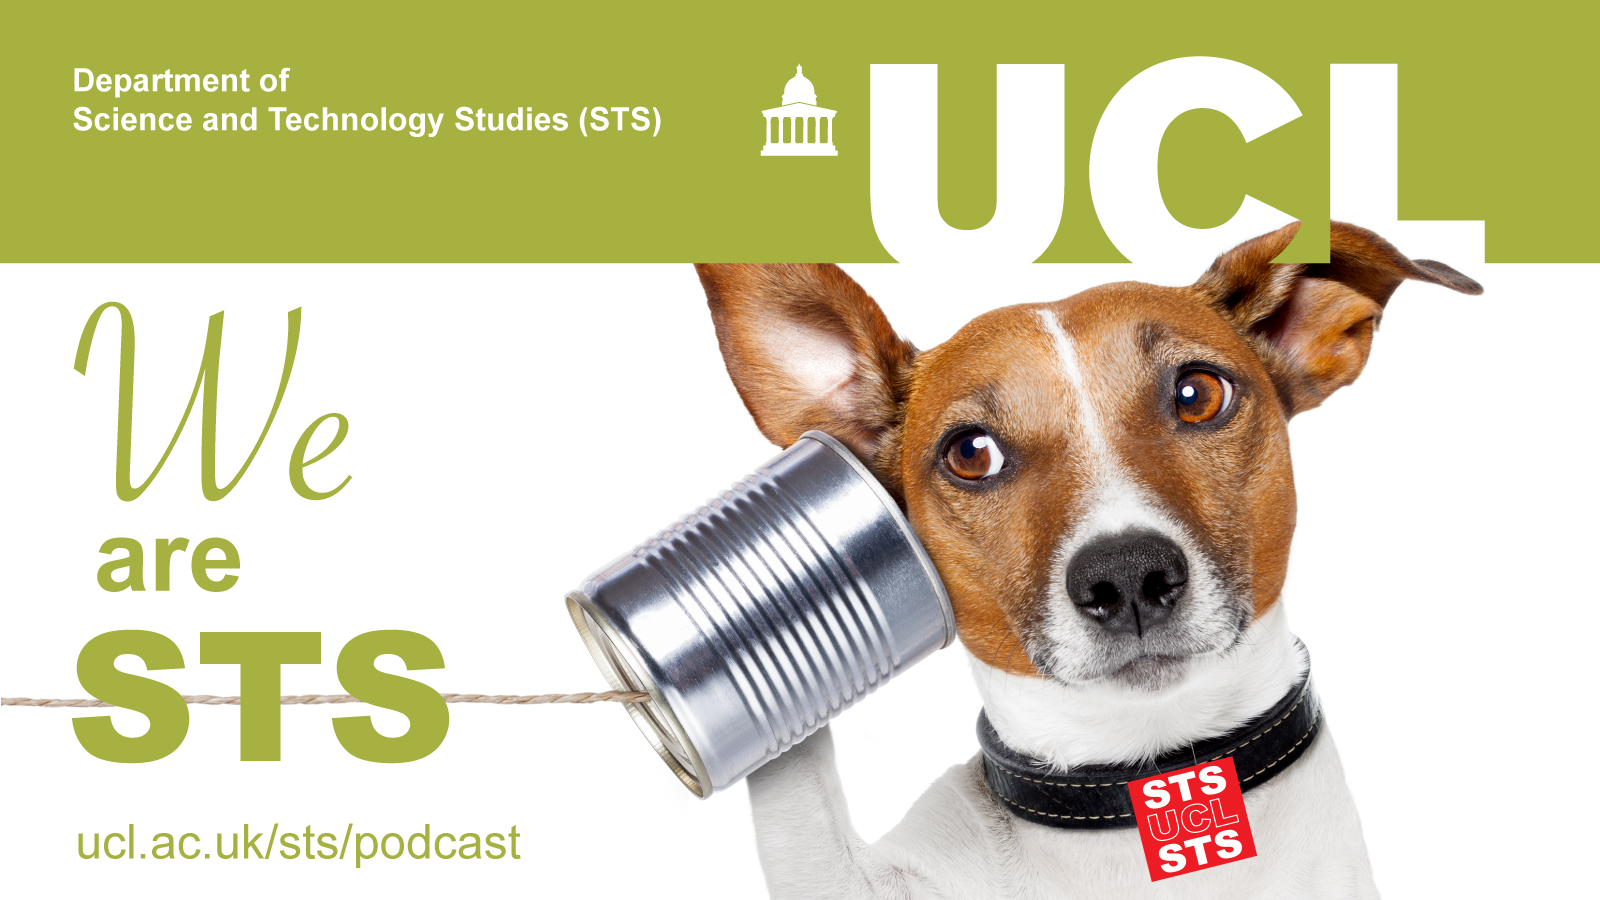 WeAreSTS - a podcast from UCL Department of Science and Technology Studies (STS)